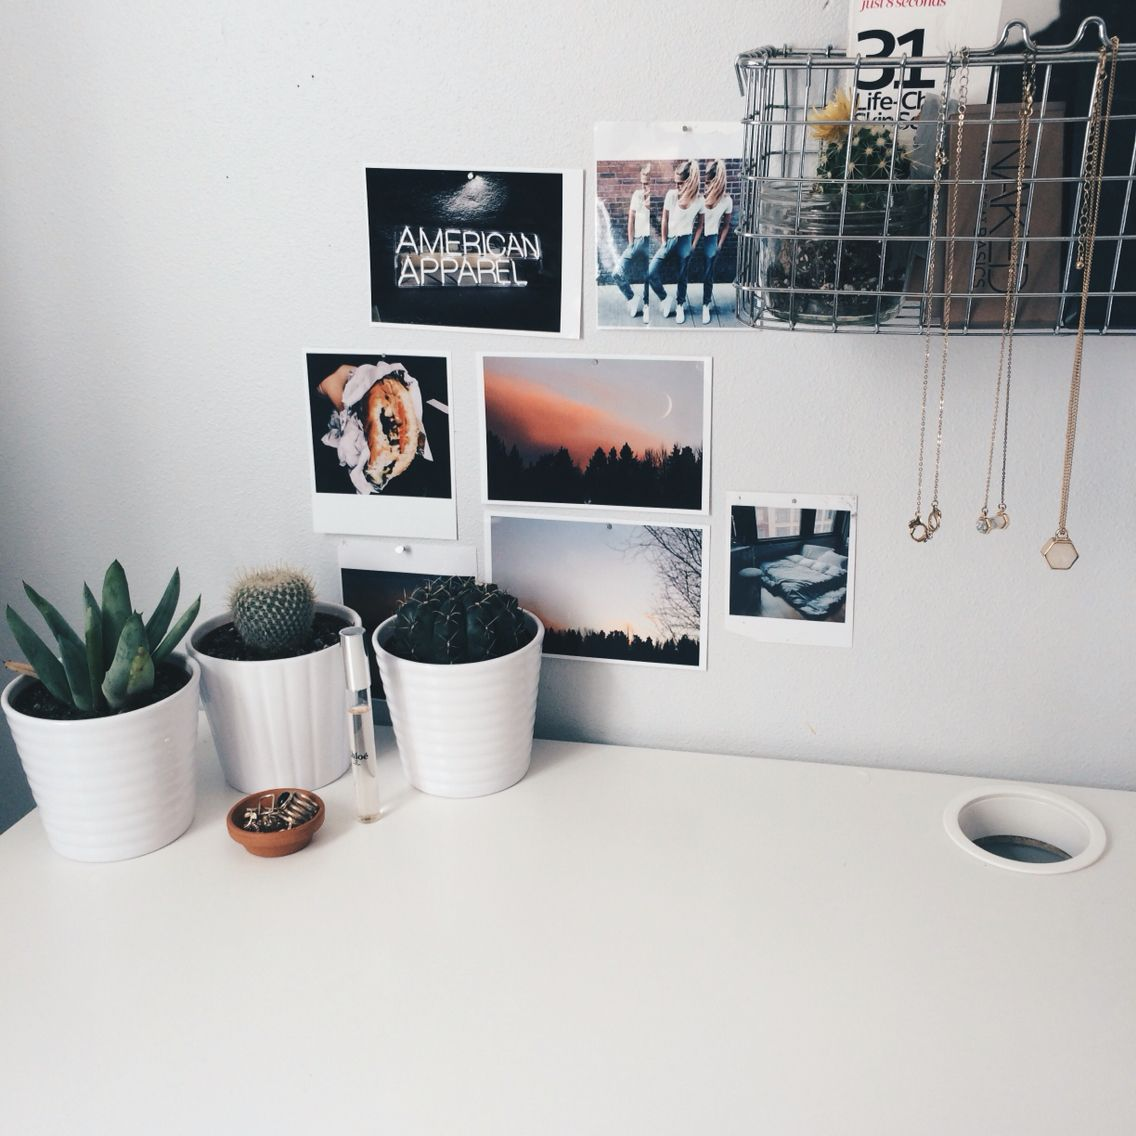 White college dorm room ideas with picture photos and lights comfy corner cozy shelves also uooncampus uocontest muebles diy spaces pinterest rh